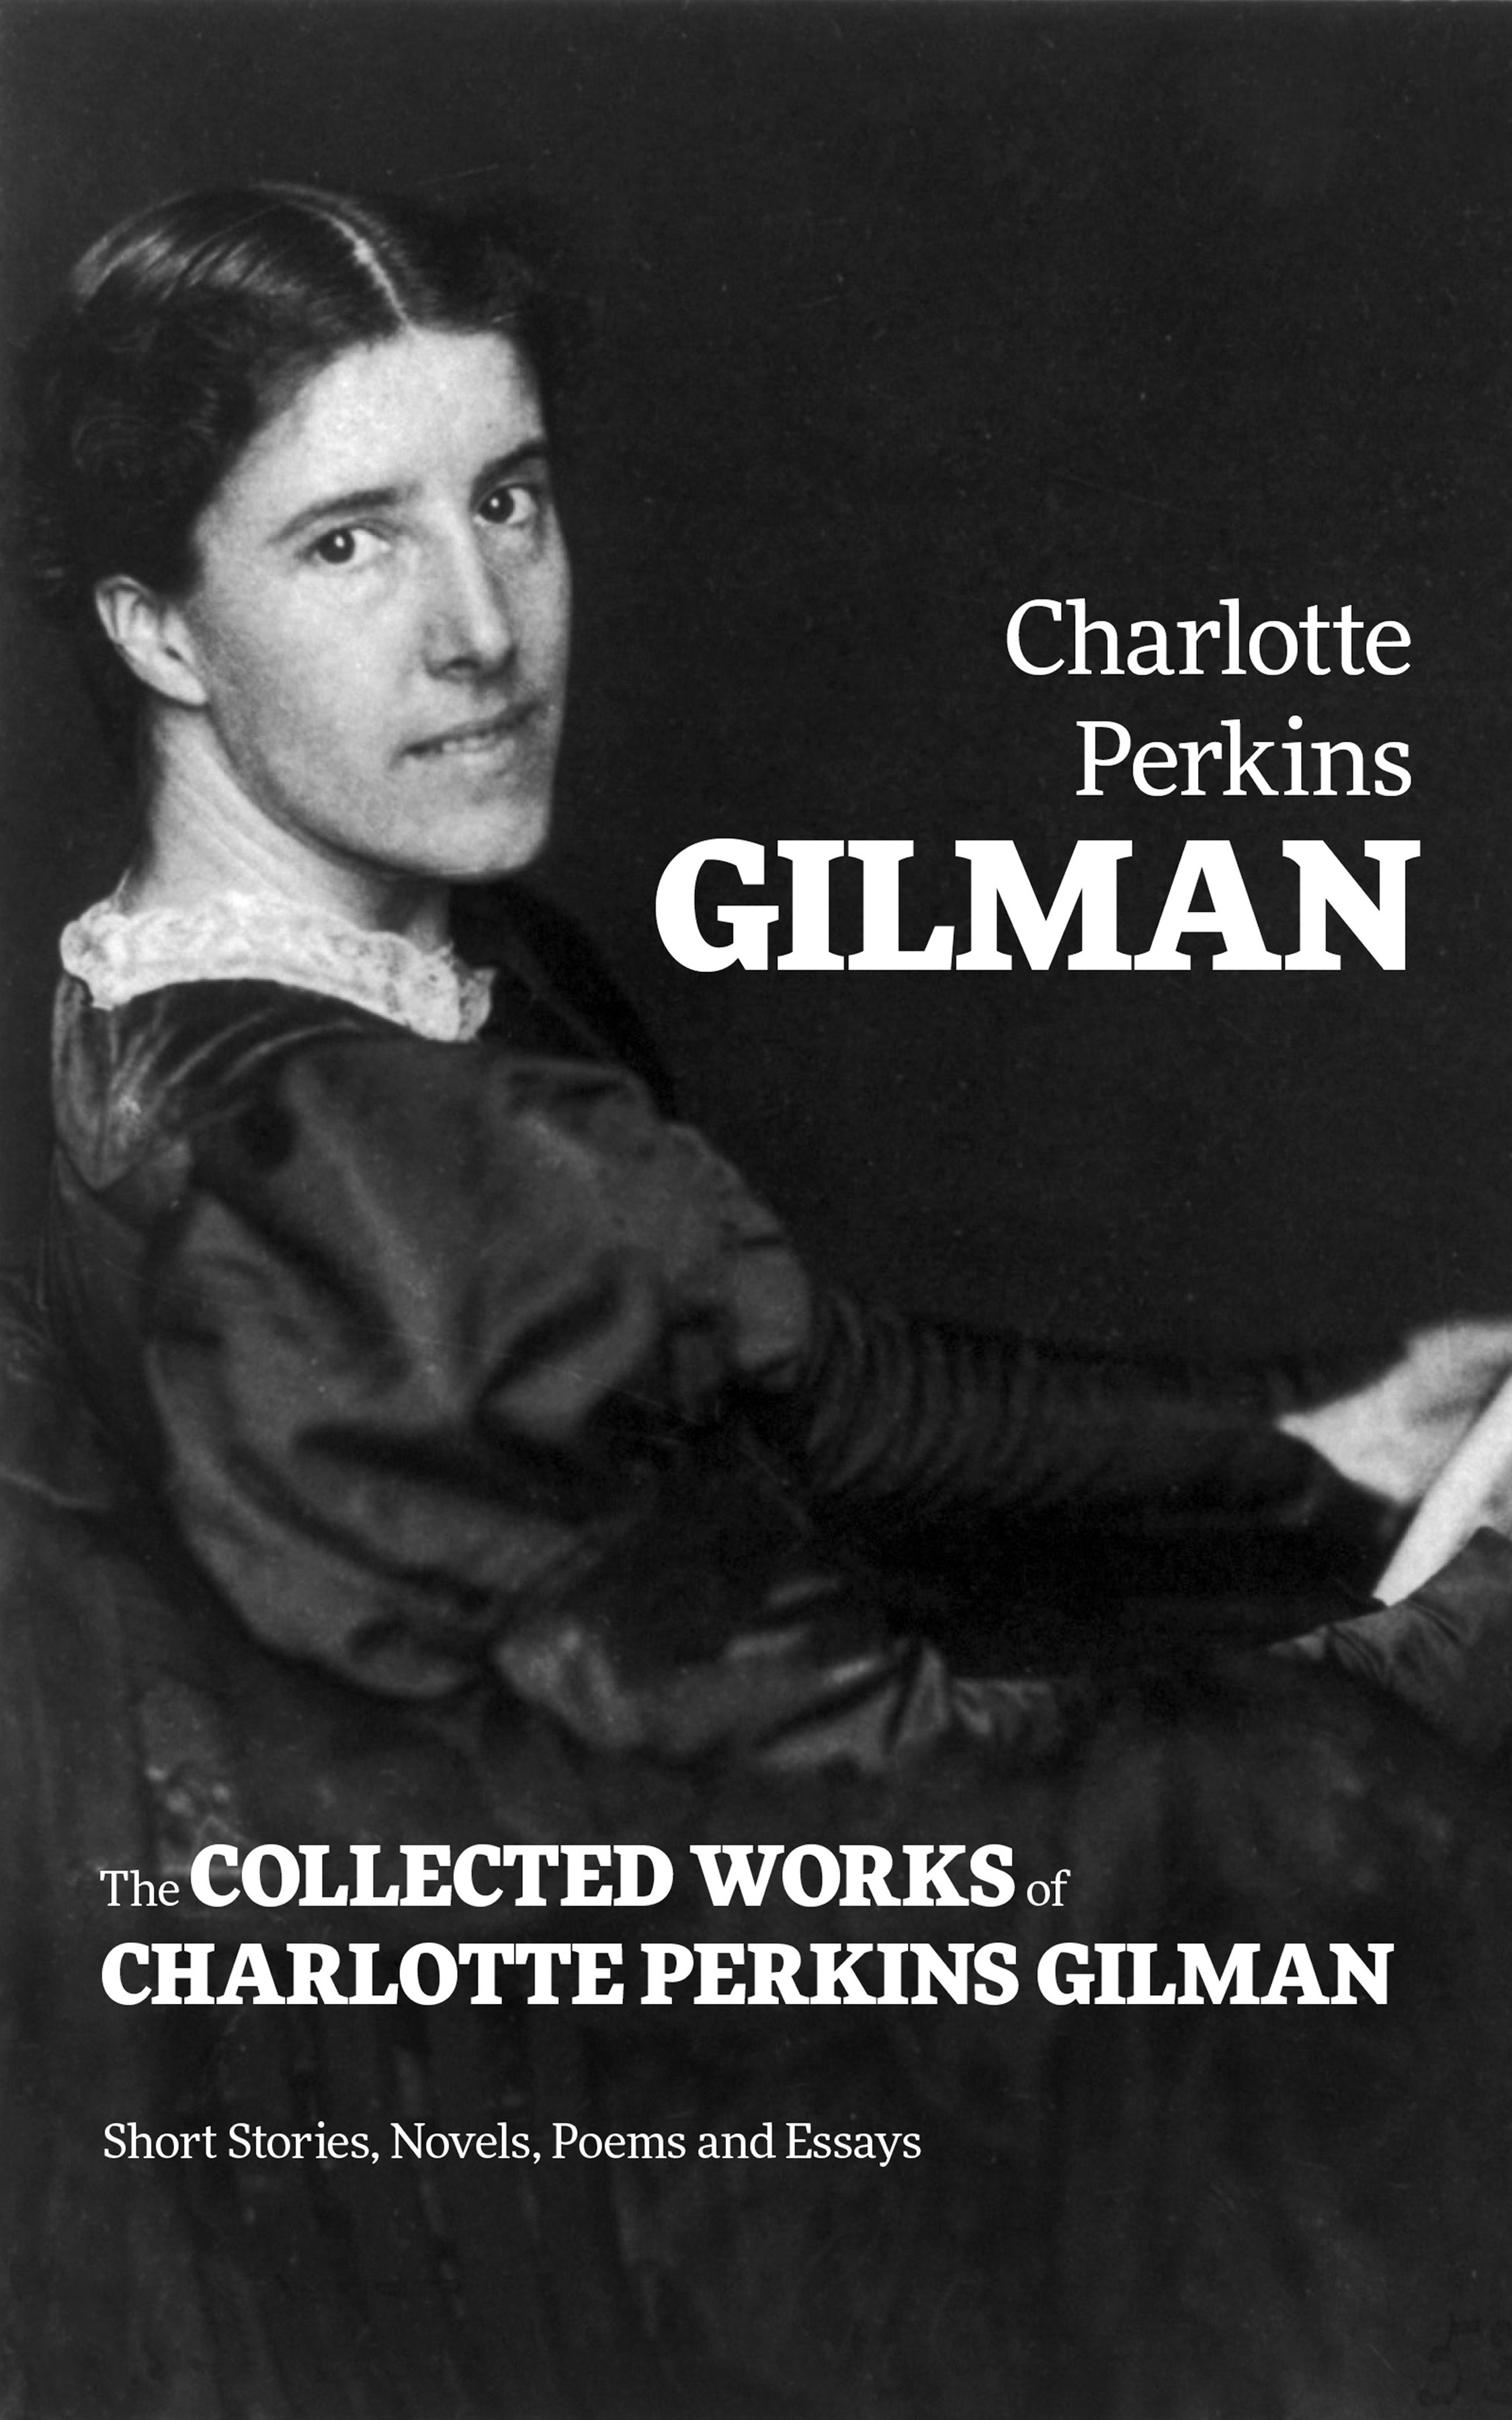 Charlotte Perkins Gilman The Collected Works of Charlotte Perkins Gilman: Short Stories, Novels, Poems and Essays шорты dorothy perkins curve dorothy perkins curve do029ewfage5